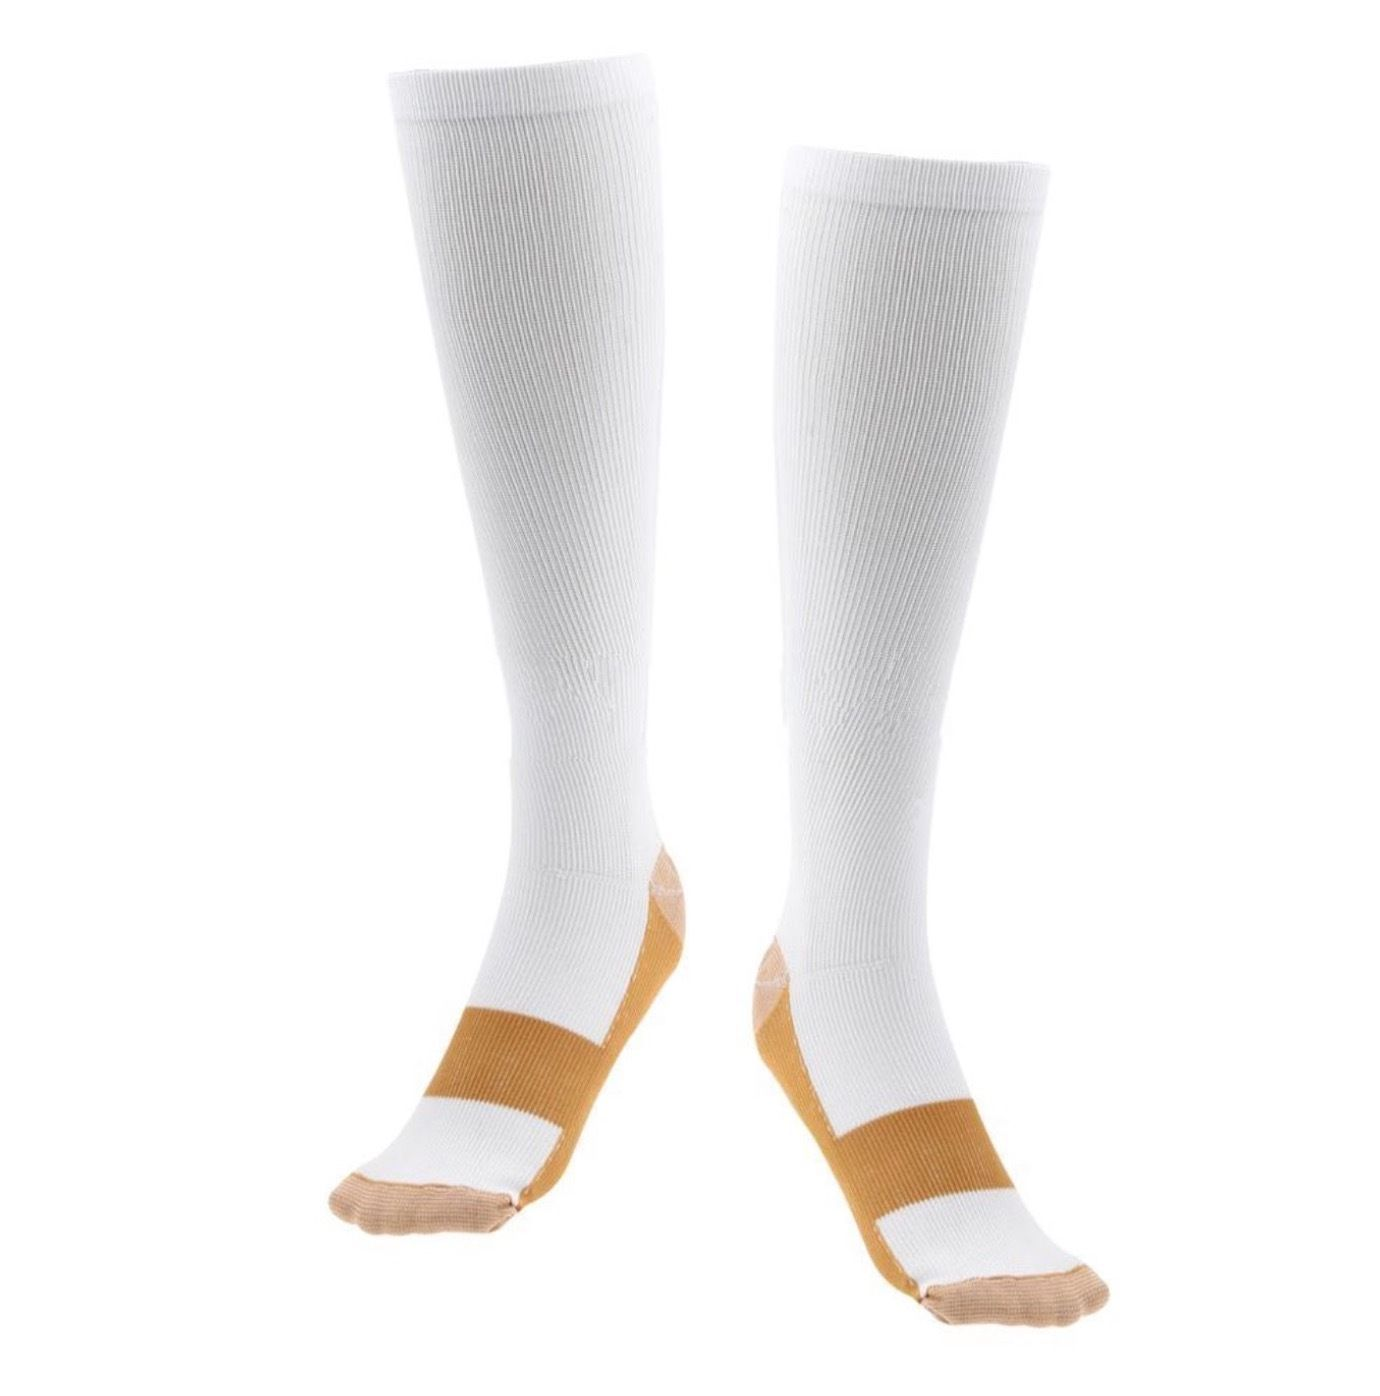 New Hot Sale Copper Infused Compression Socks Graduated Men Women Unisex Crew Socks S-XXL